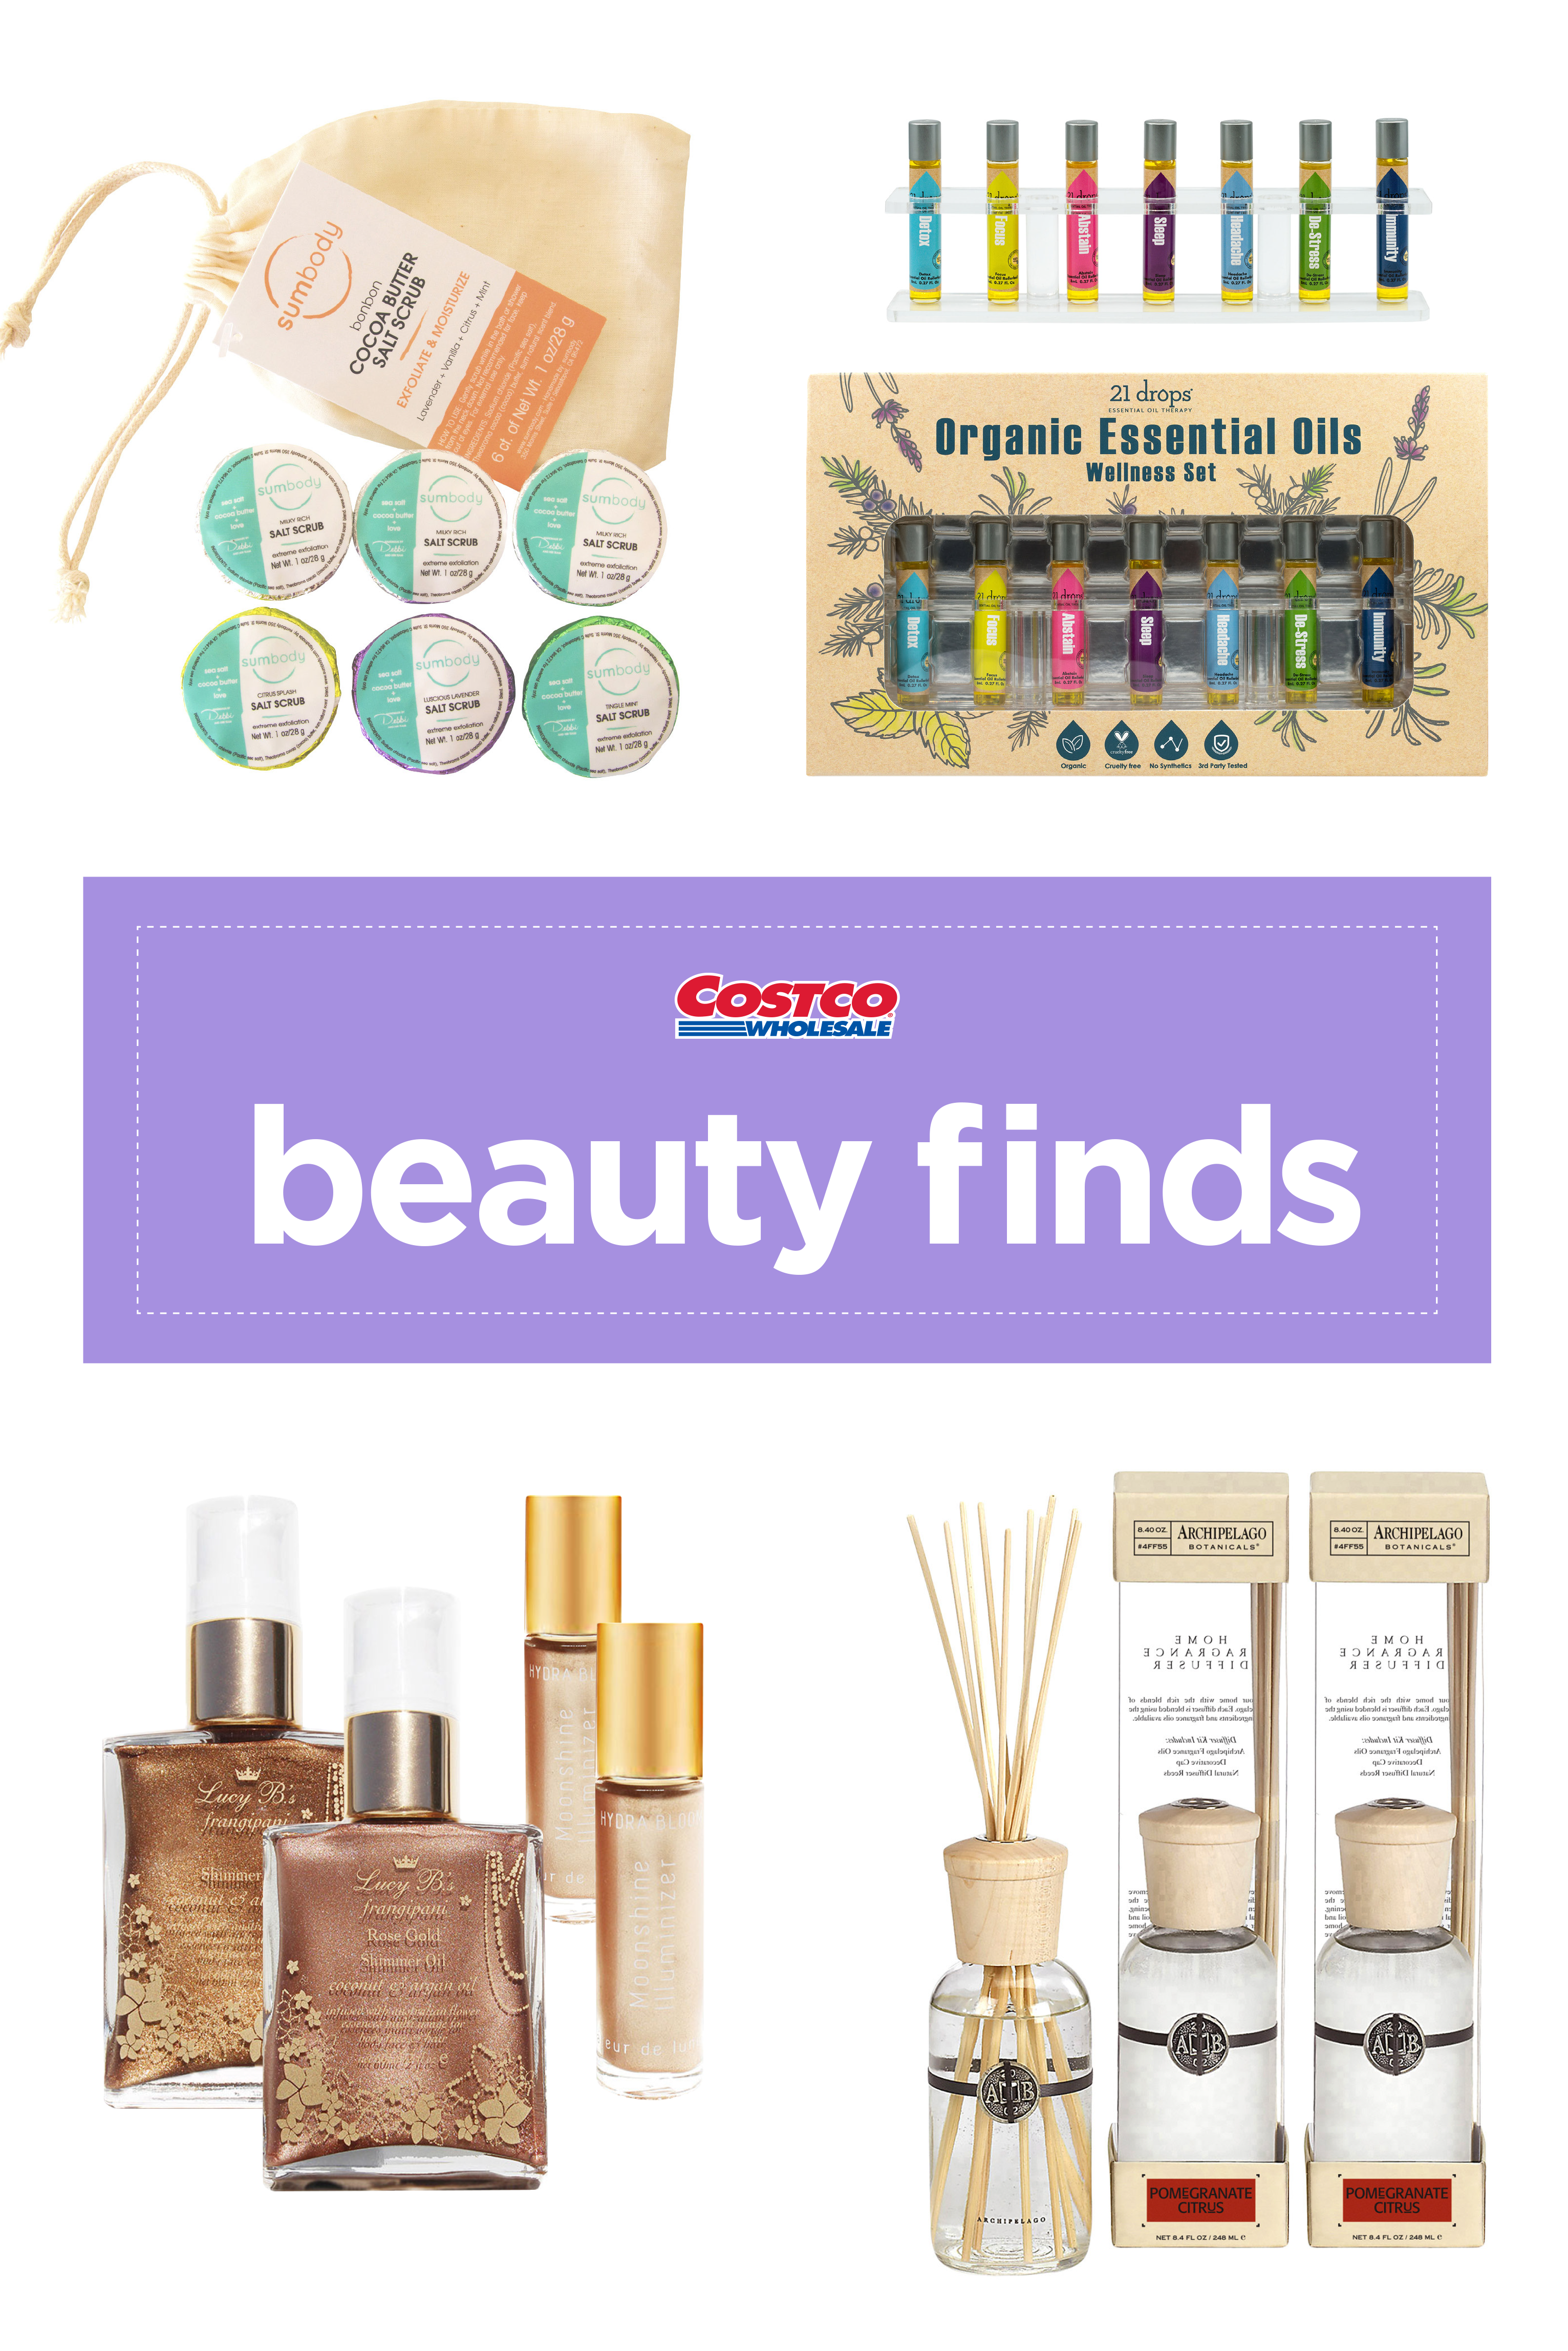 f7eb90fec5a Do you need gift ideas this holiday season? Find skin care products and  fragrances at Costco.com.